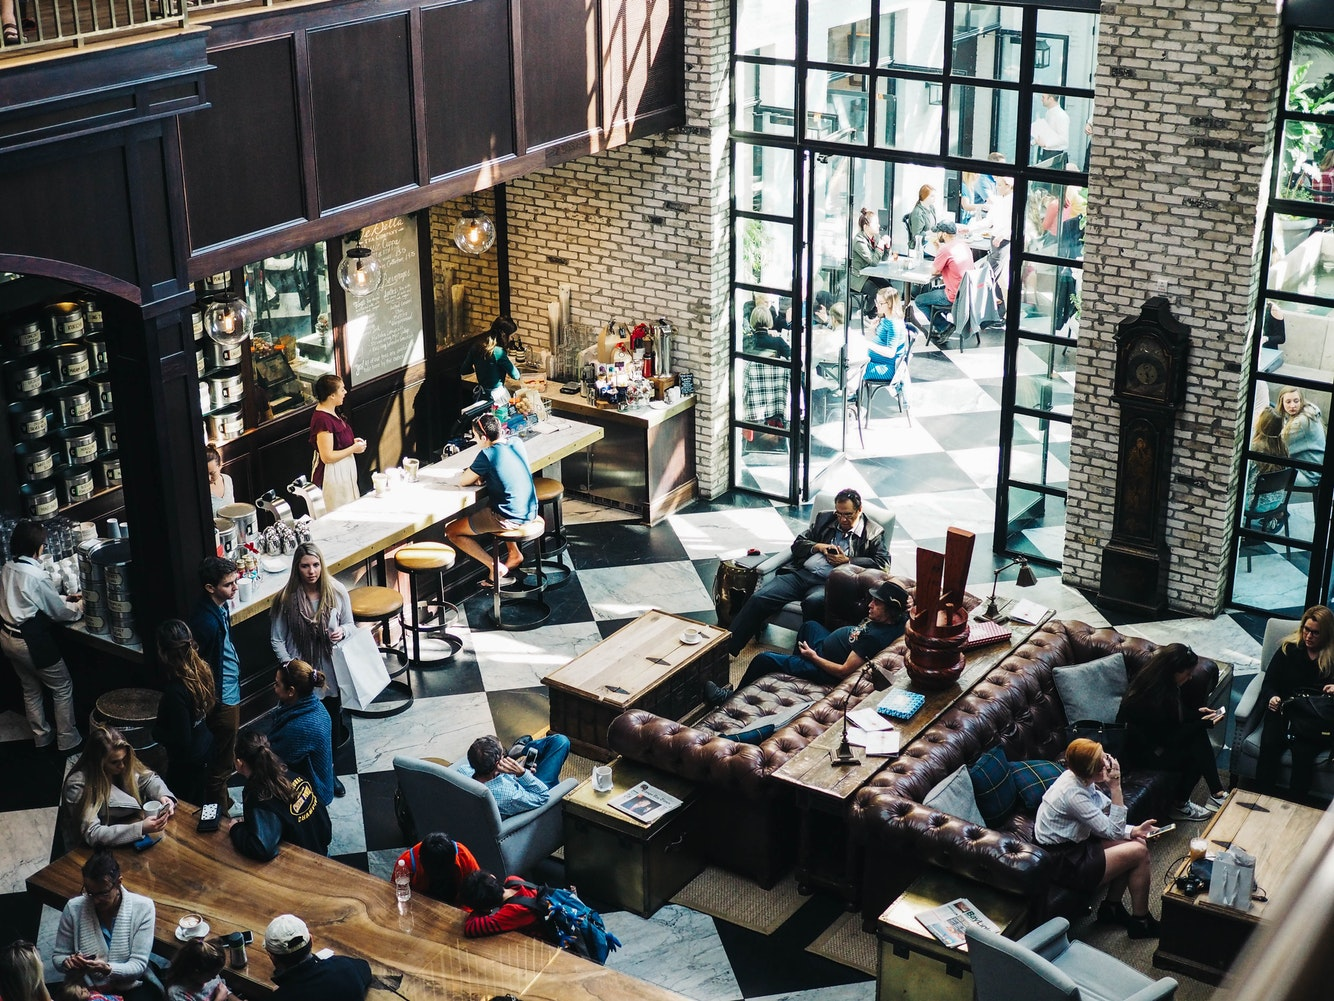 Busy cafe workspace